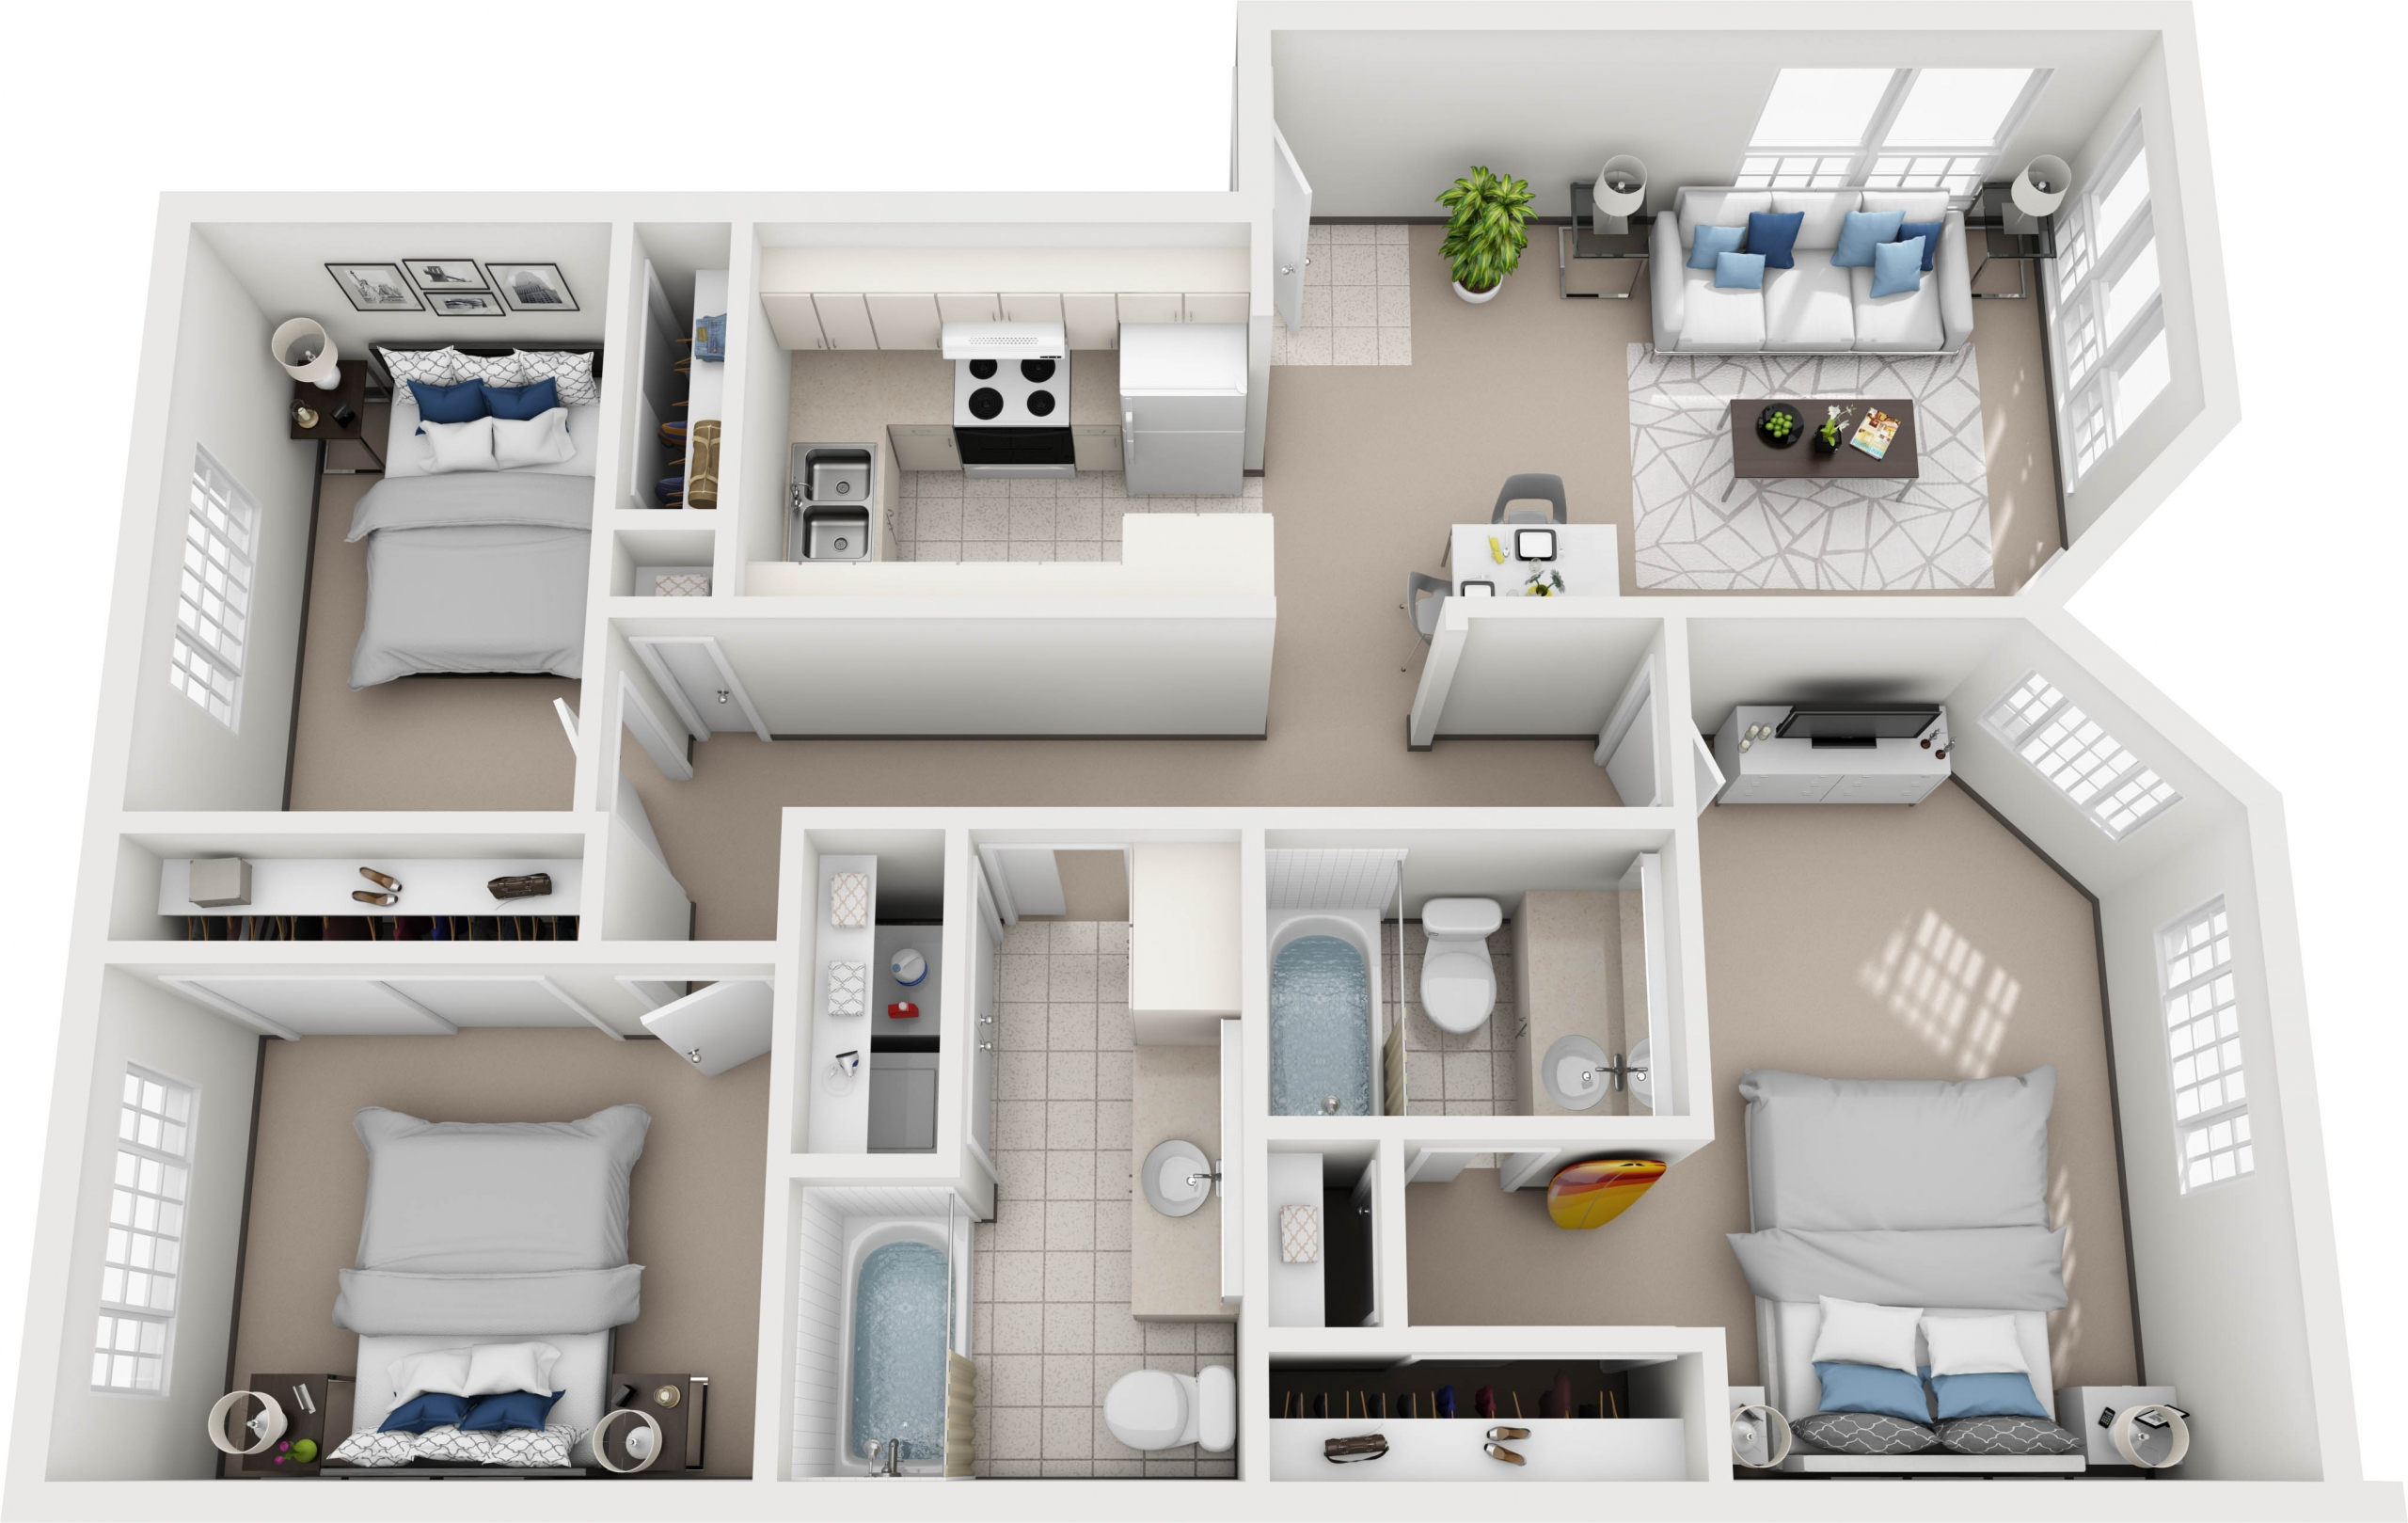 Model J - 3 bedroom apartment floor plan at Villas at Royal Kunia